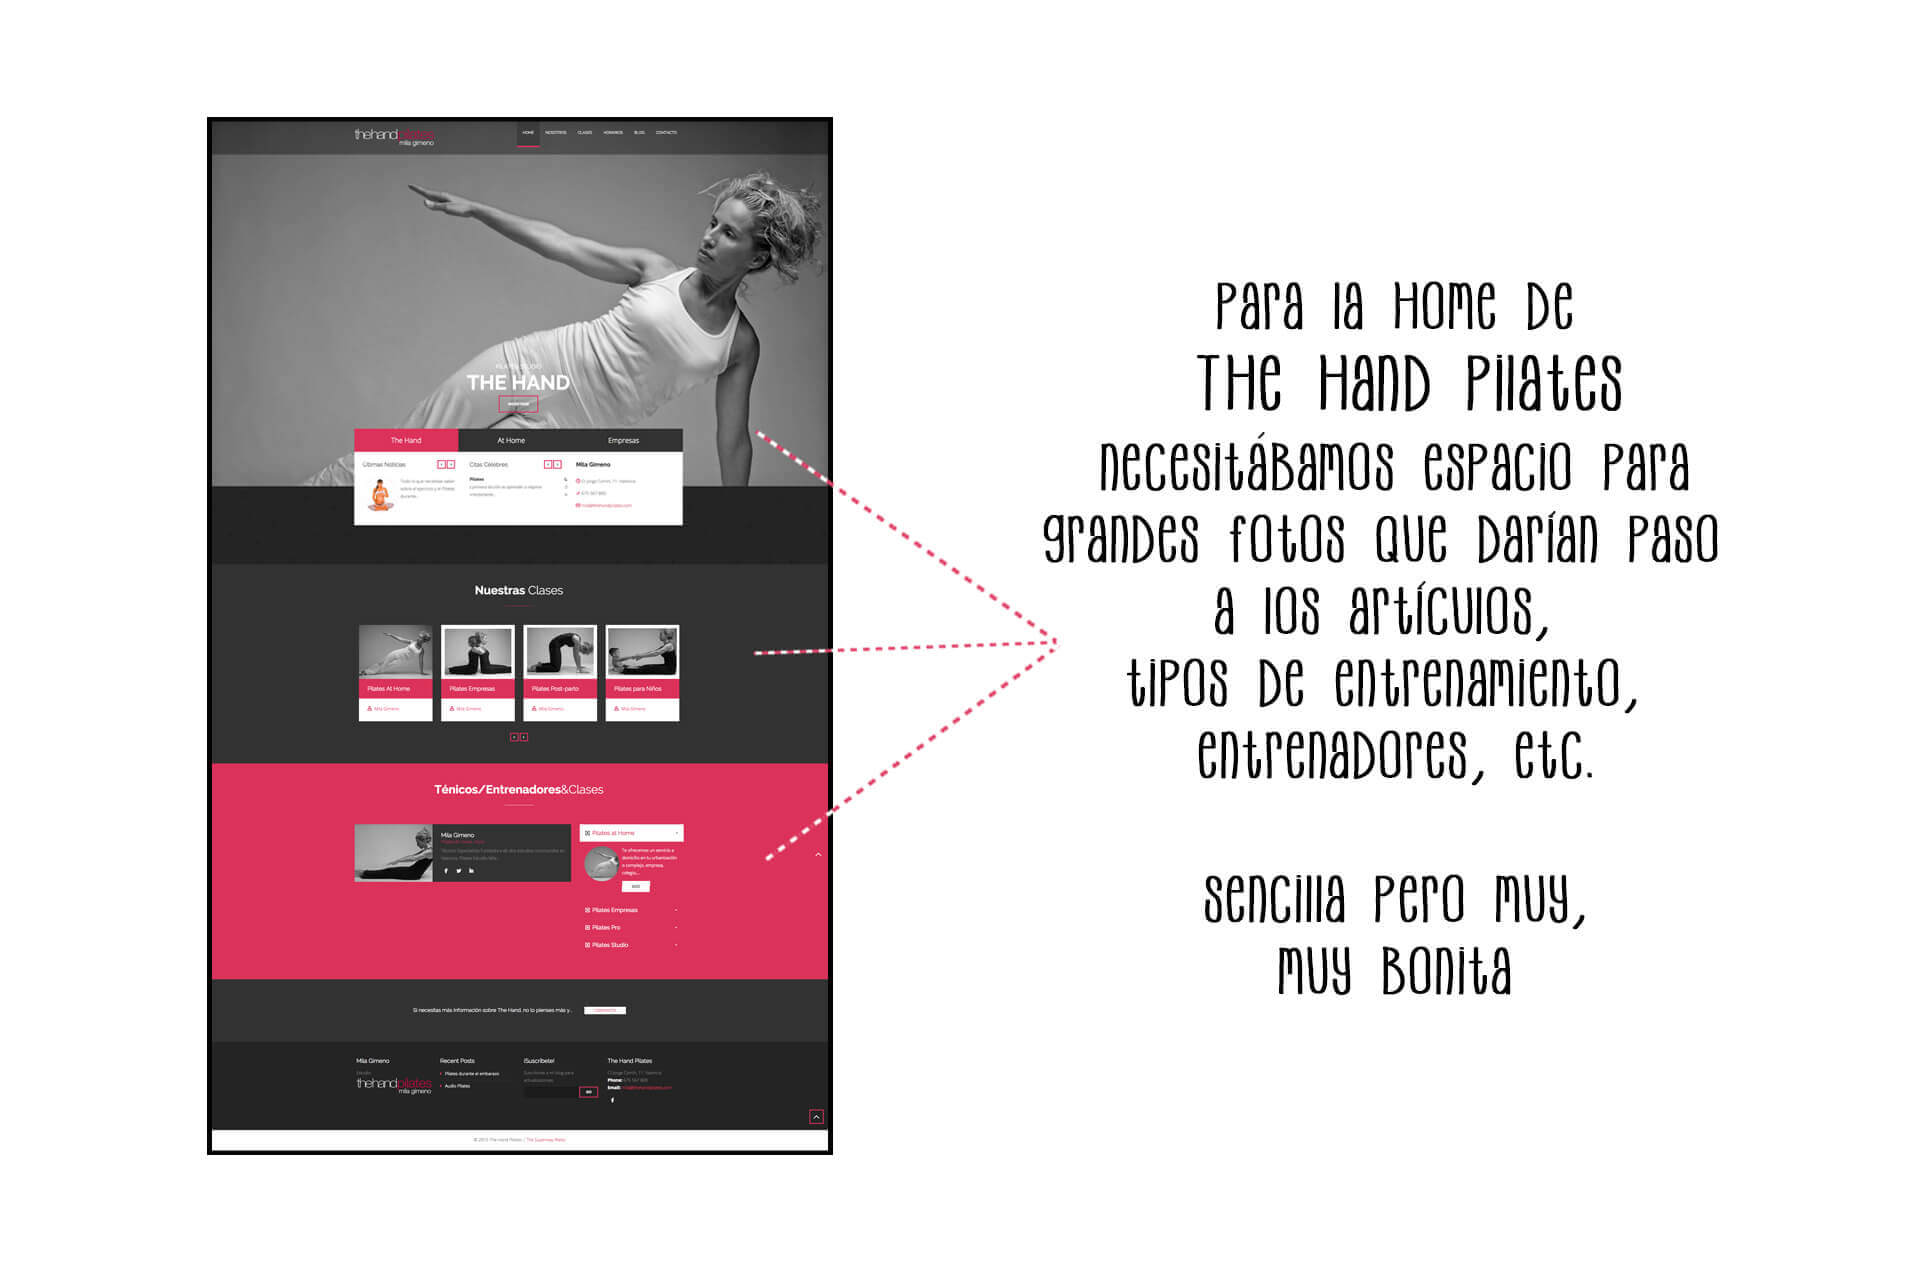 Página web The Hand Pilates Home | The Superway Webs